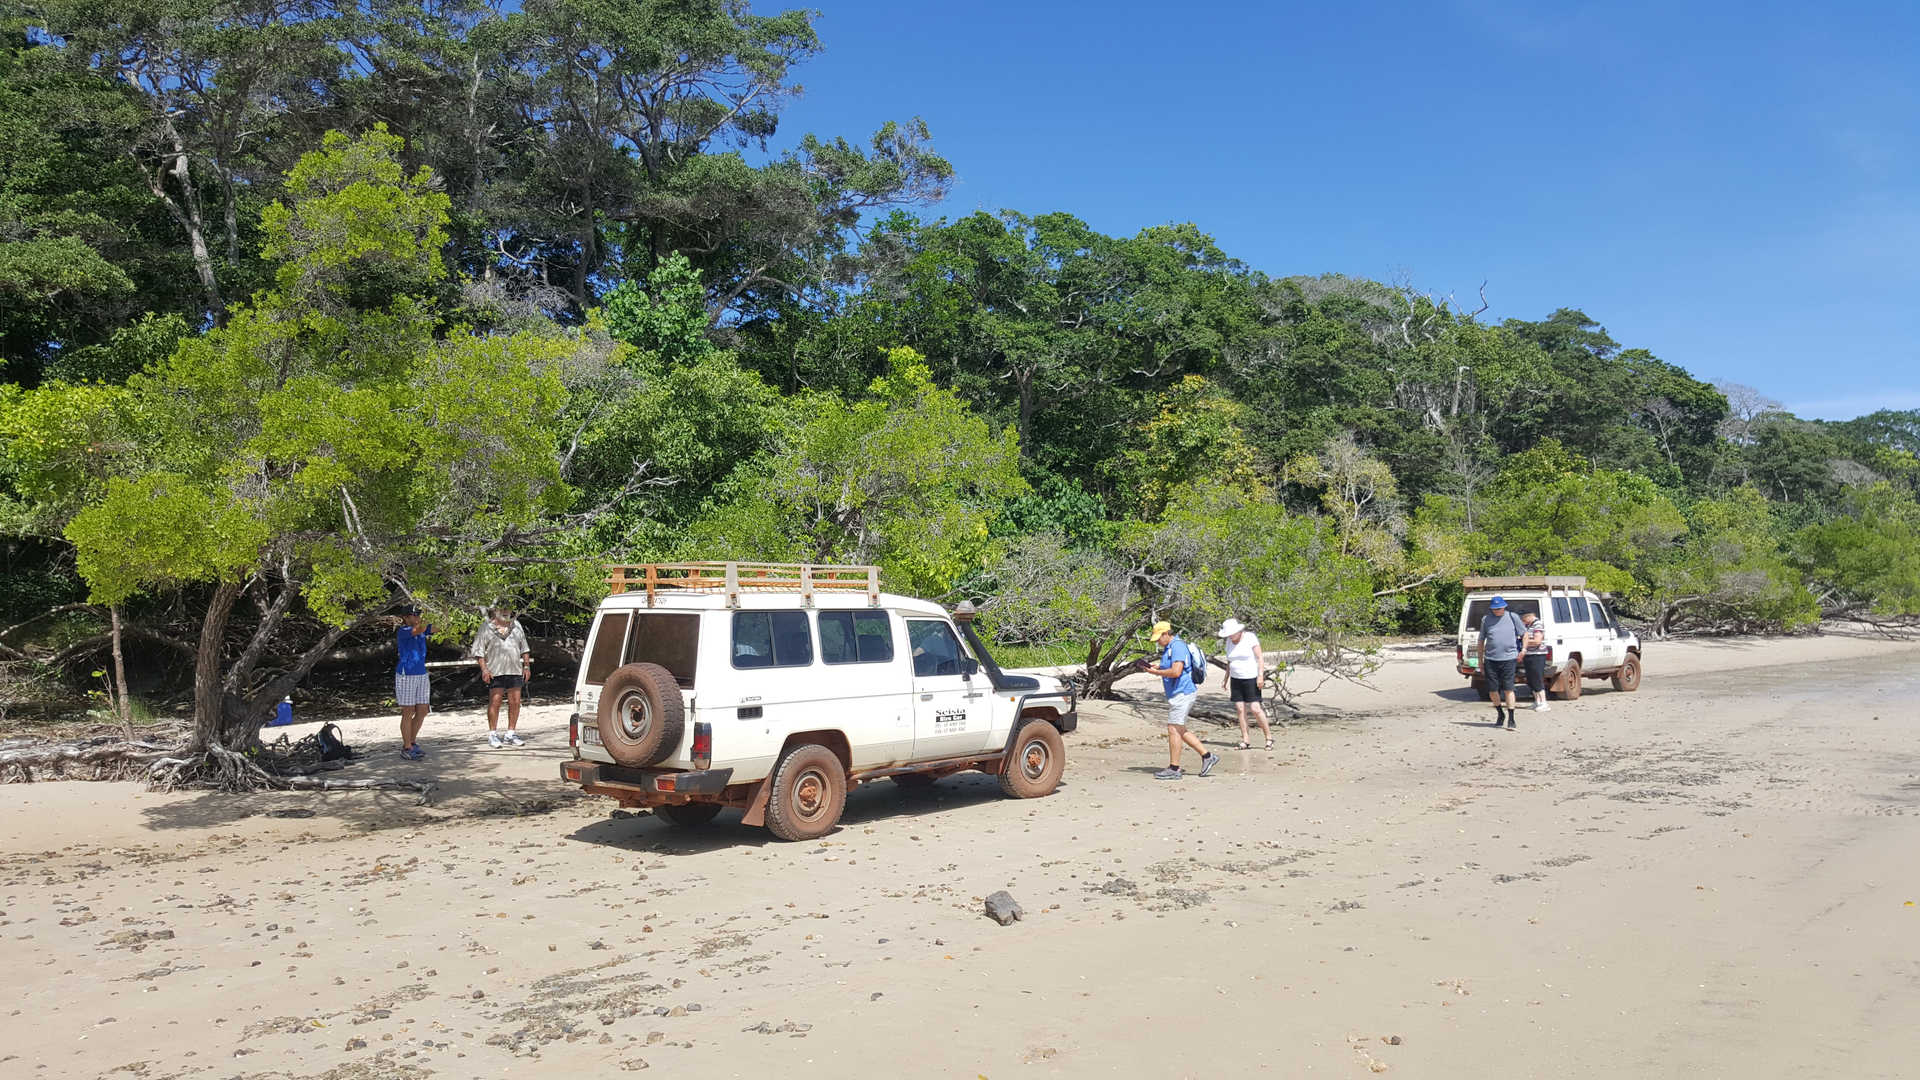 4WD Capeyork Day Tour